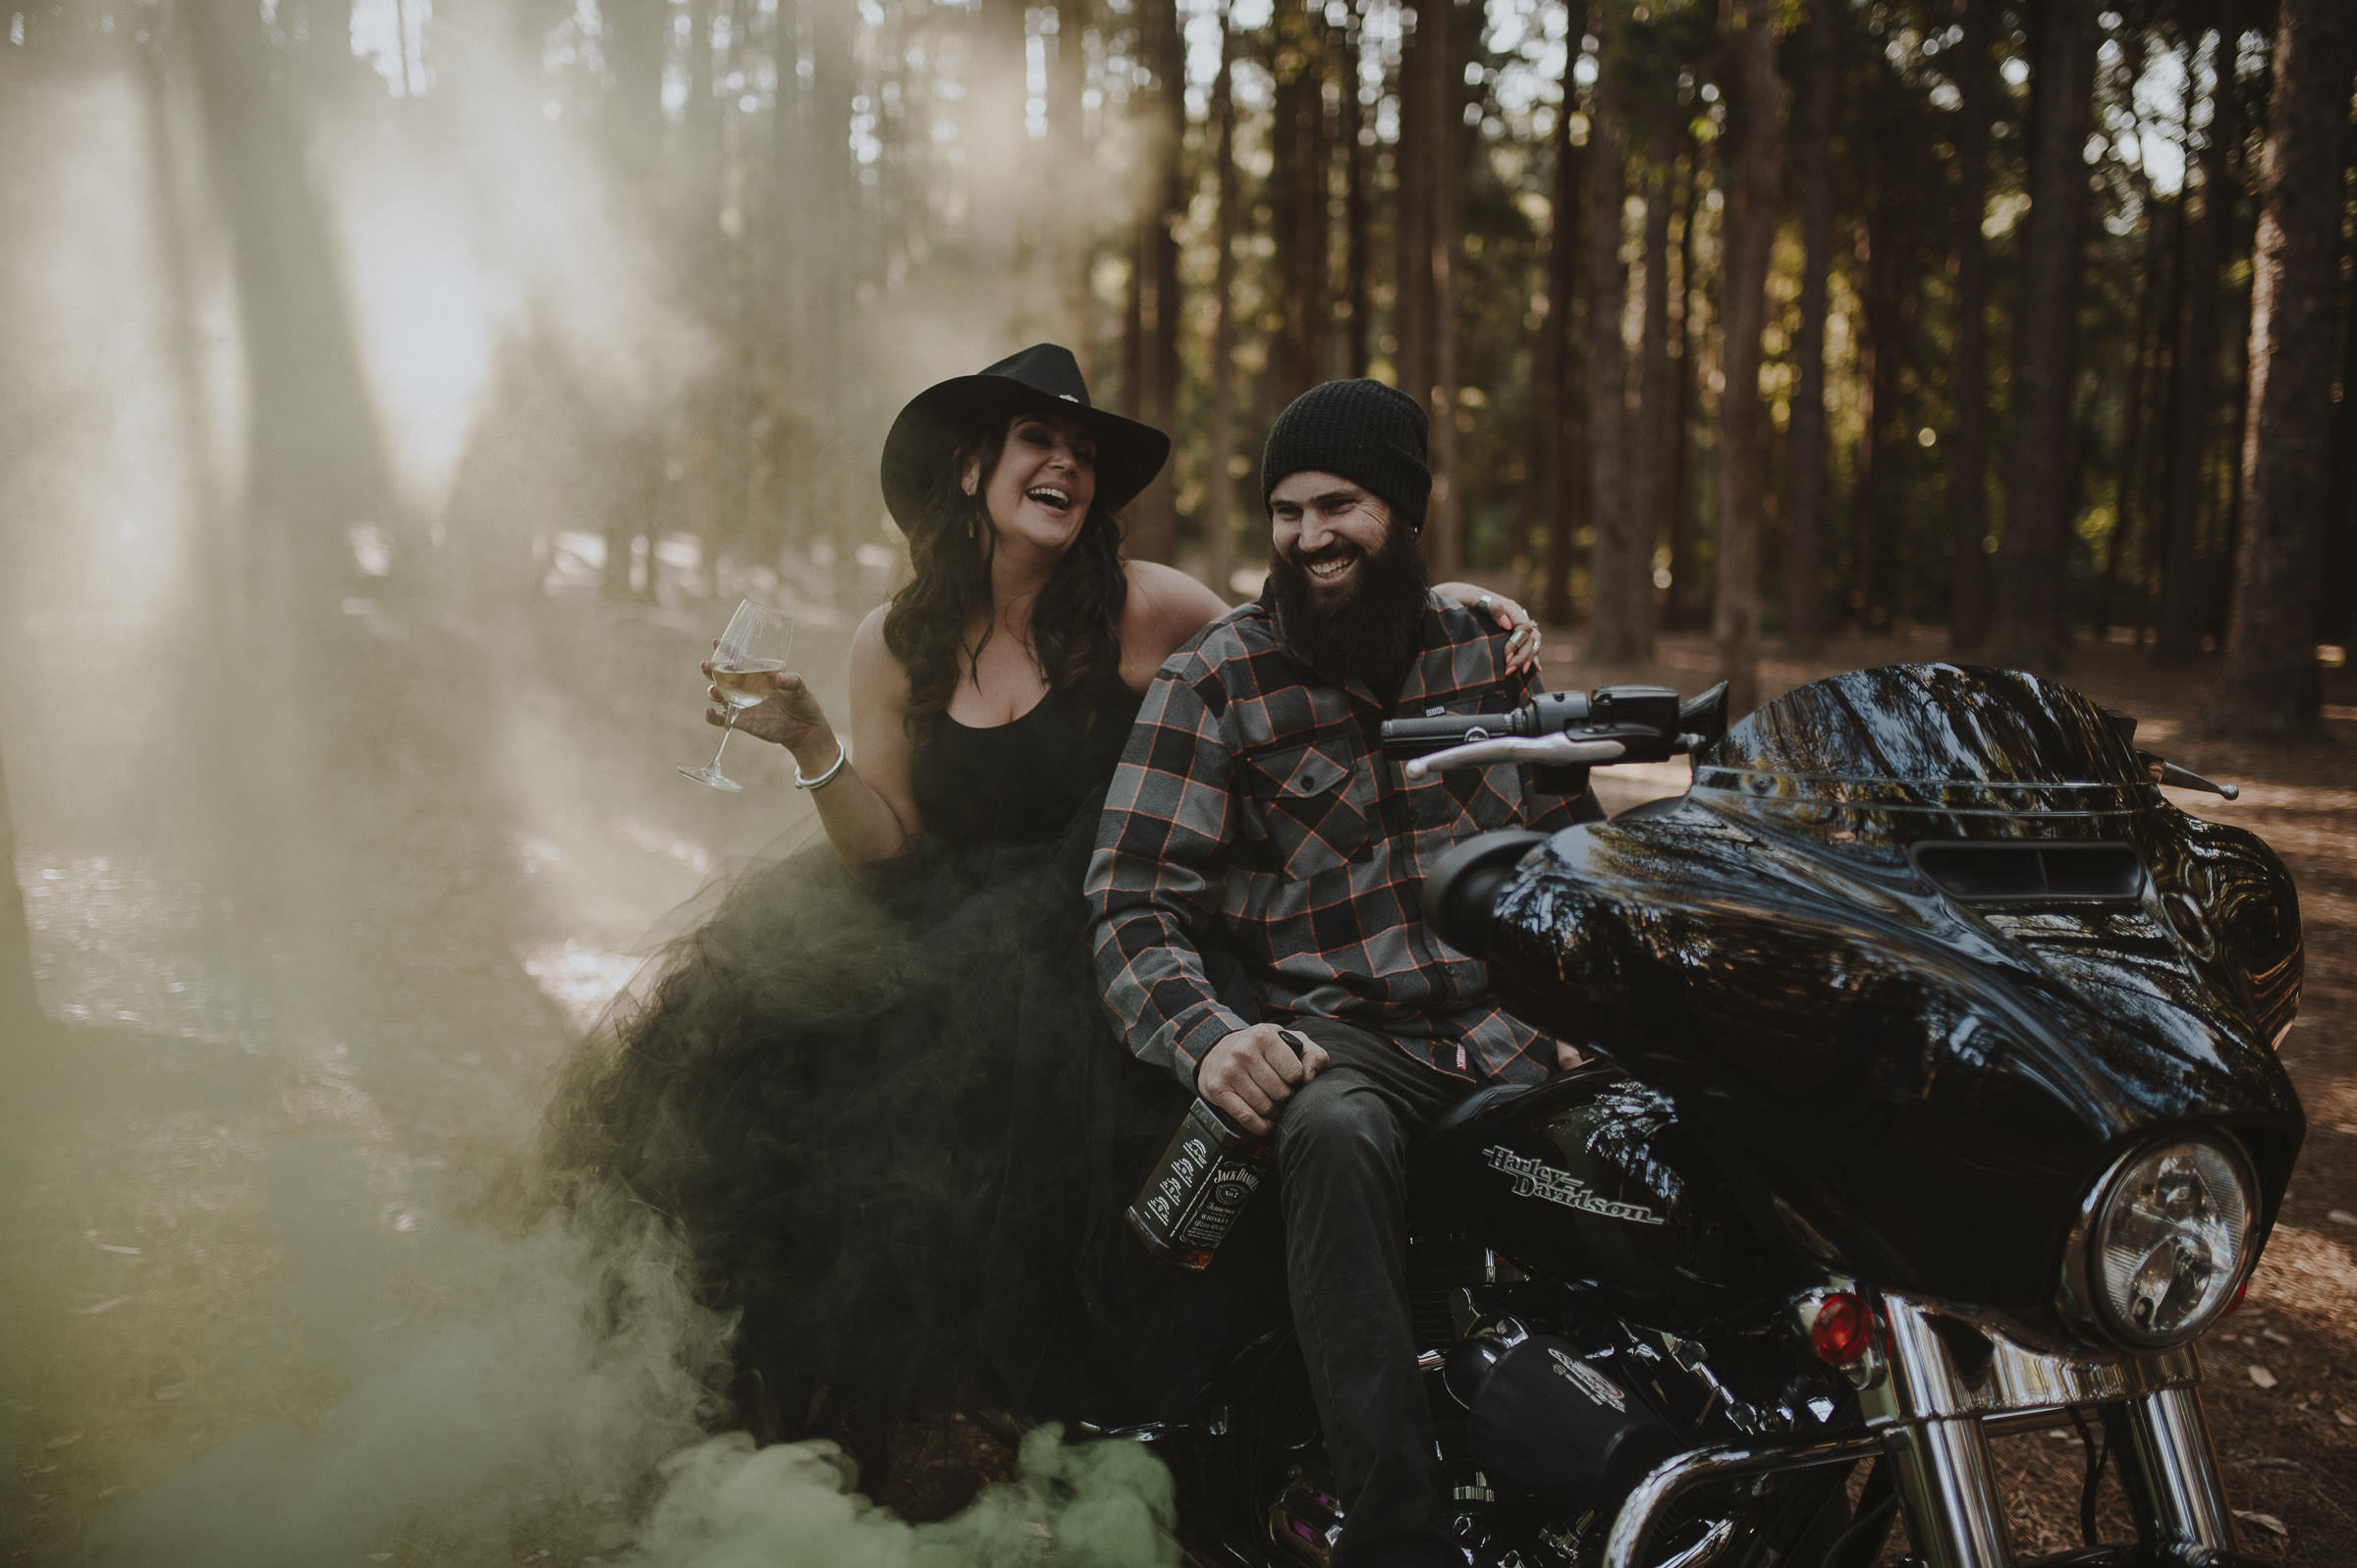 Madeline_Jamie_Watagens_Pine_Forest_Engagement_Shoot_Blog-17.jpg